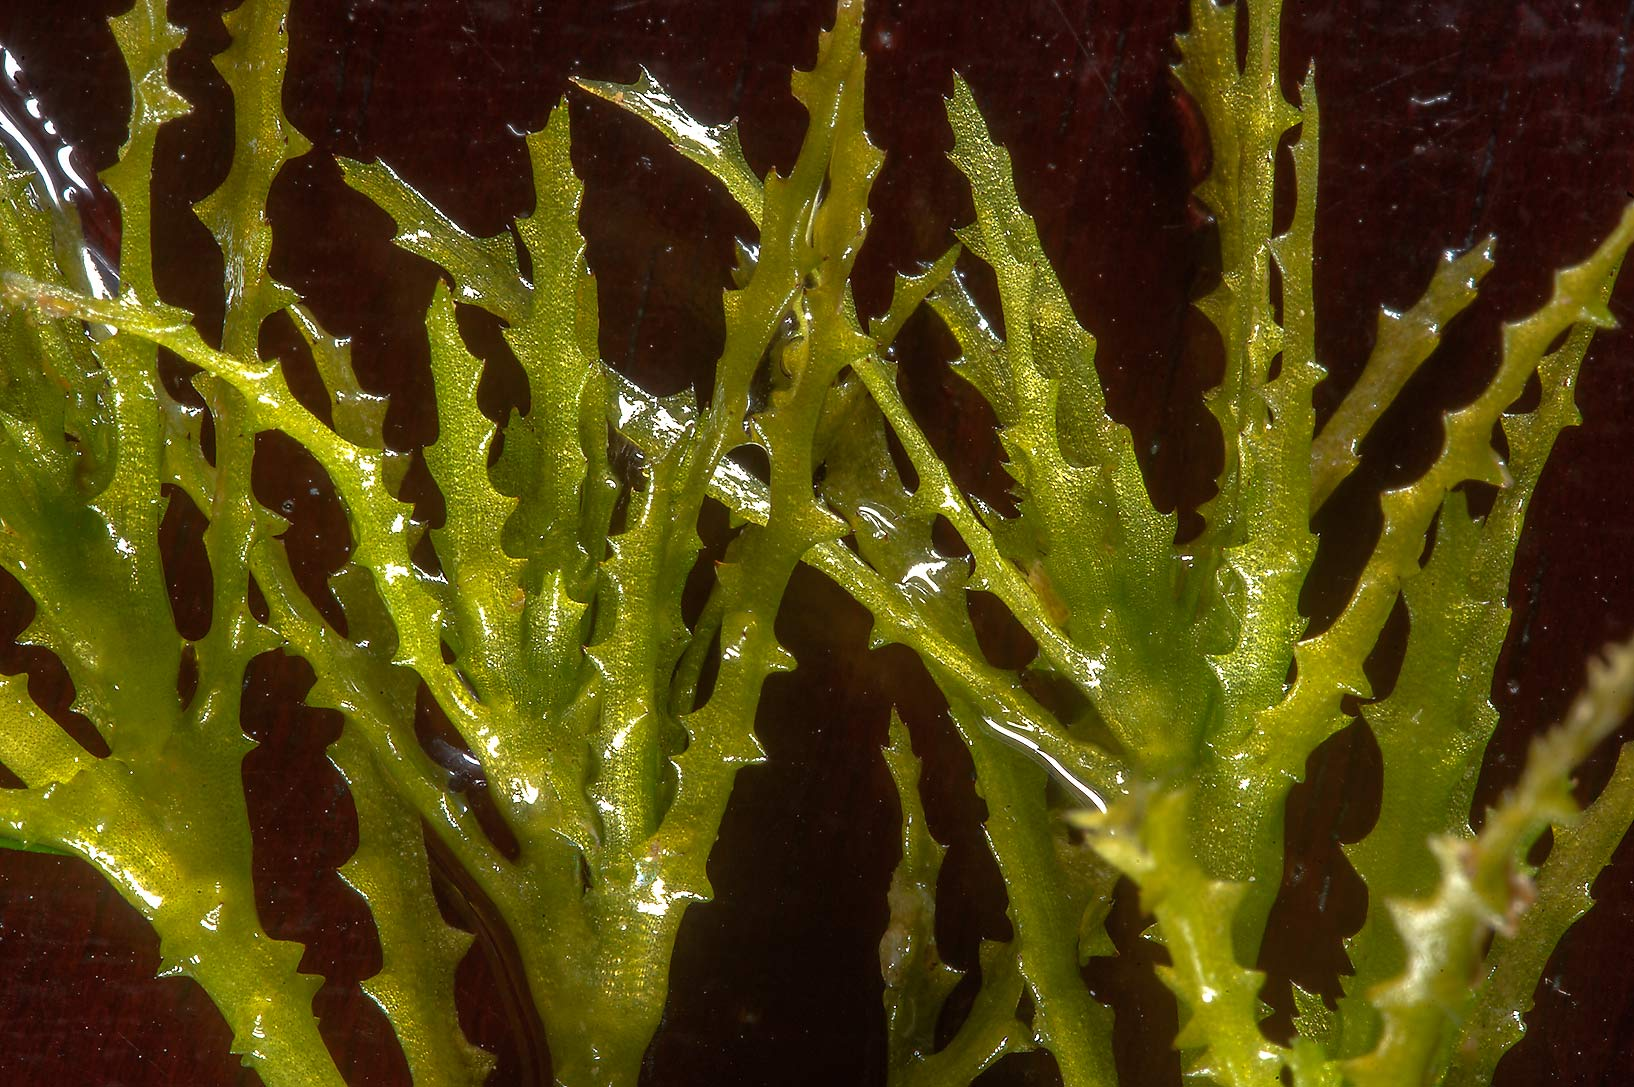 Toothed leaves of brittle naiad aquatic plant...treatment ponds. Doha, Qatar